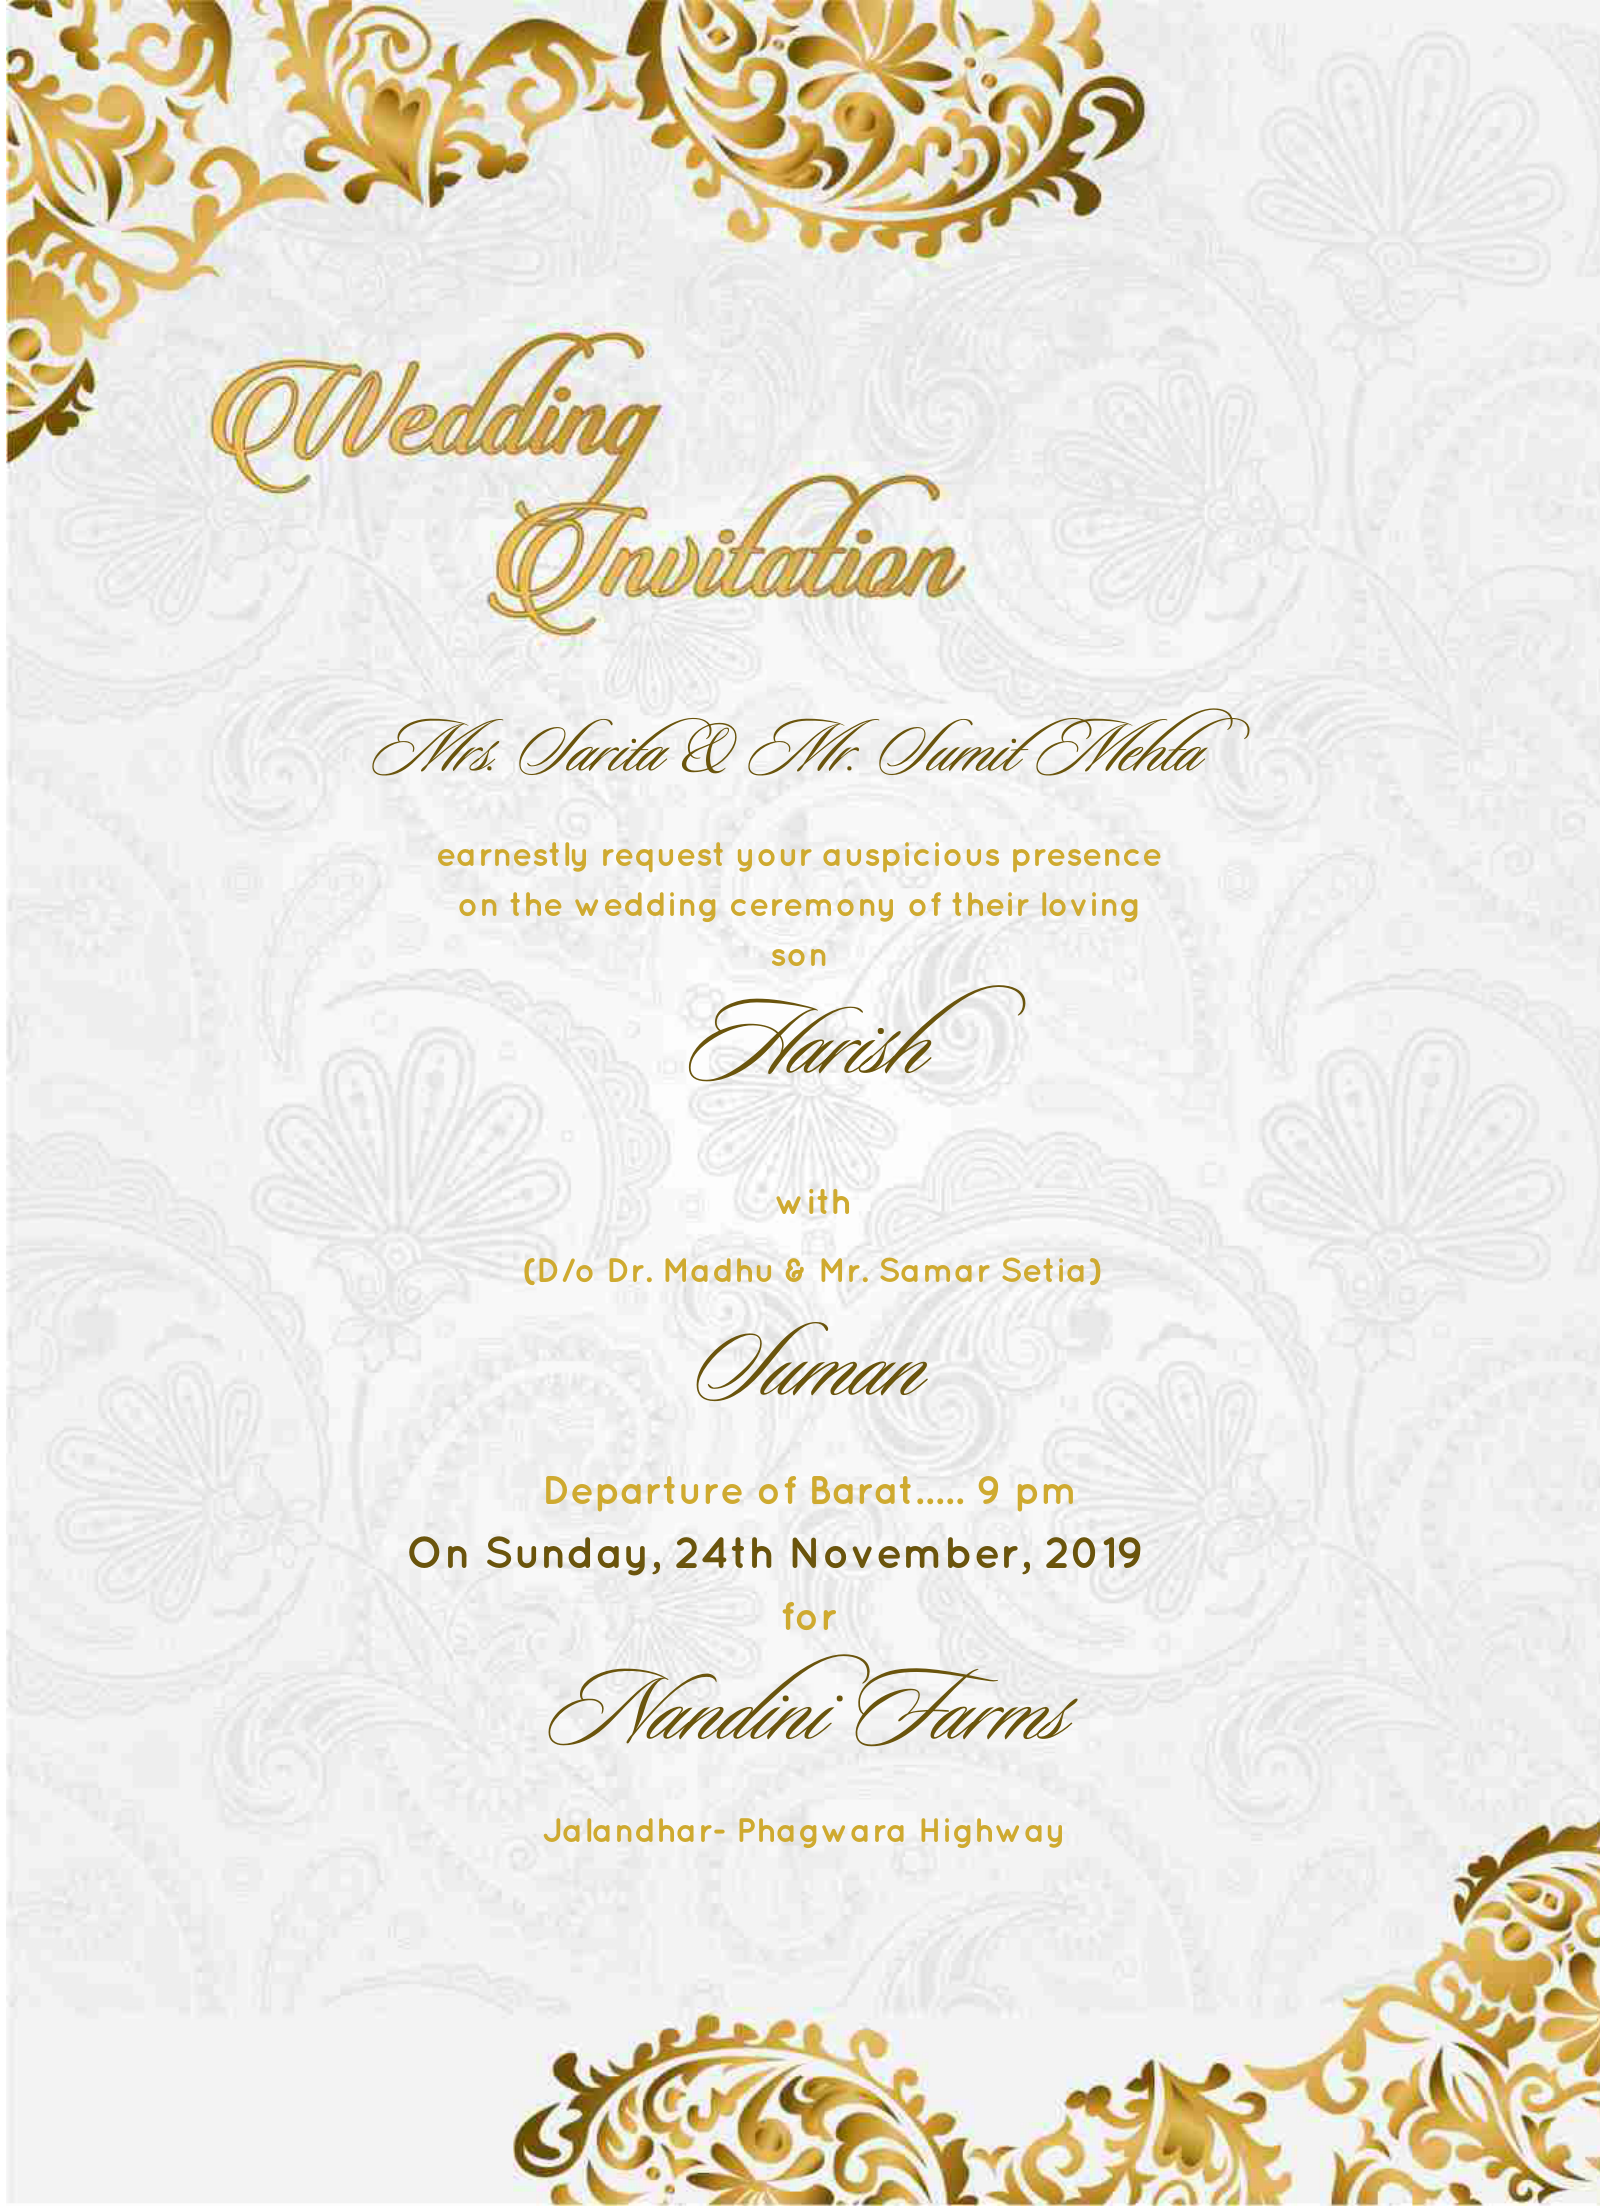 E Invite Royal White And Gold Design 2019 Make Wedding Invitations Wedding Invitations Online Digital Wedding Invitations Marriage Invitations